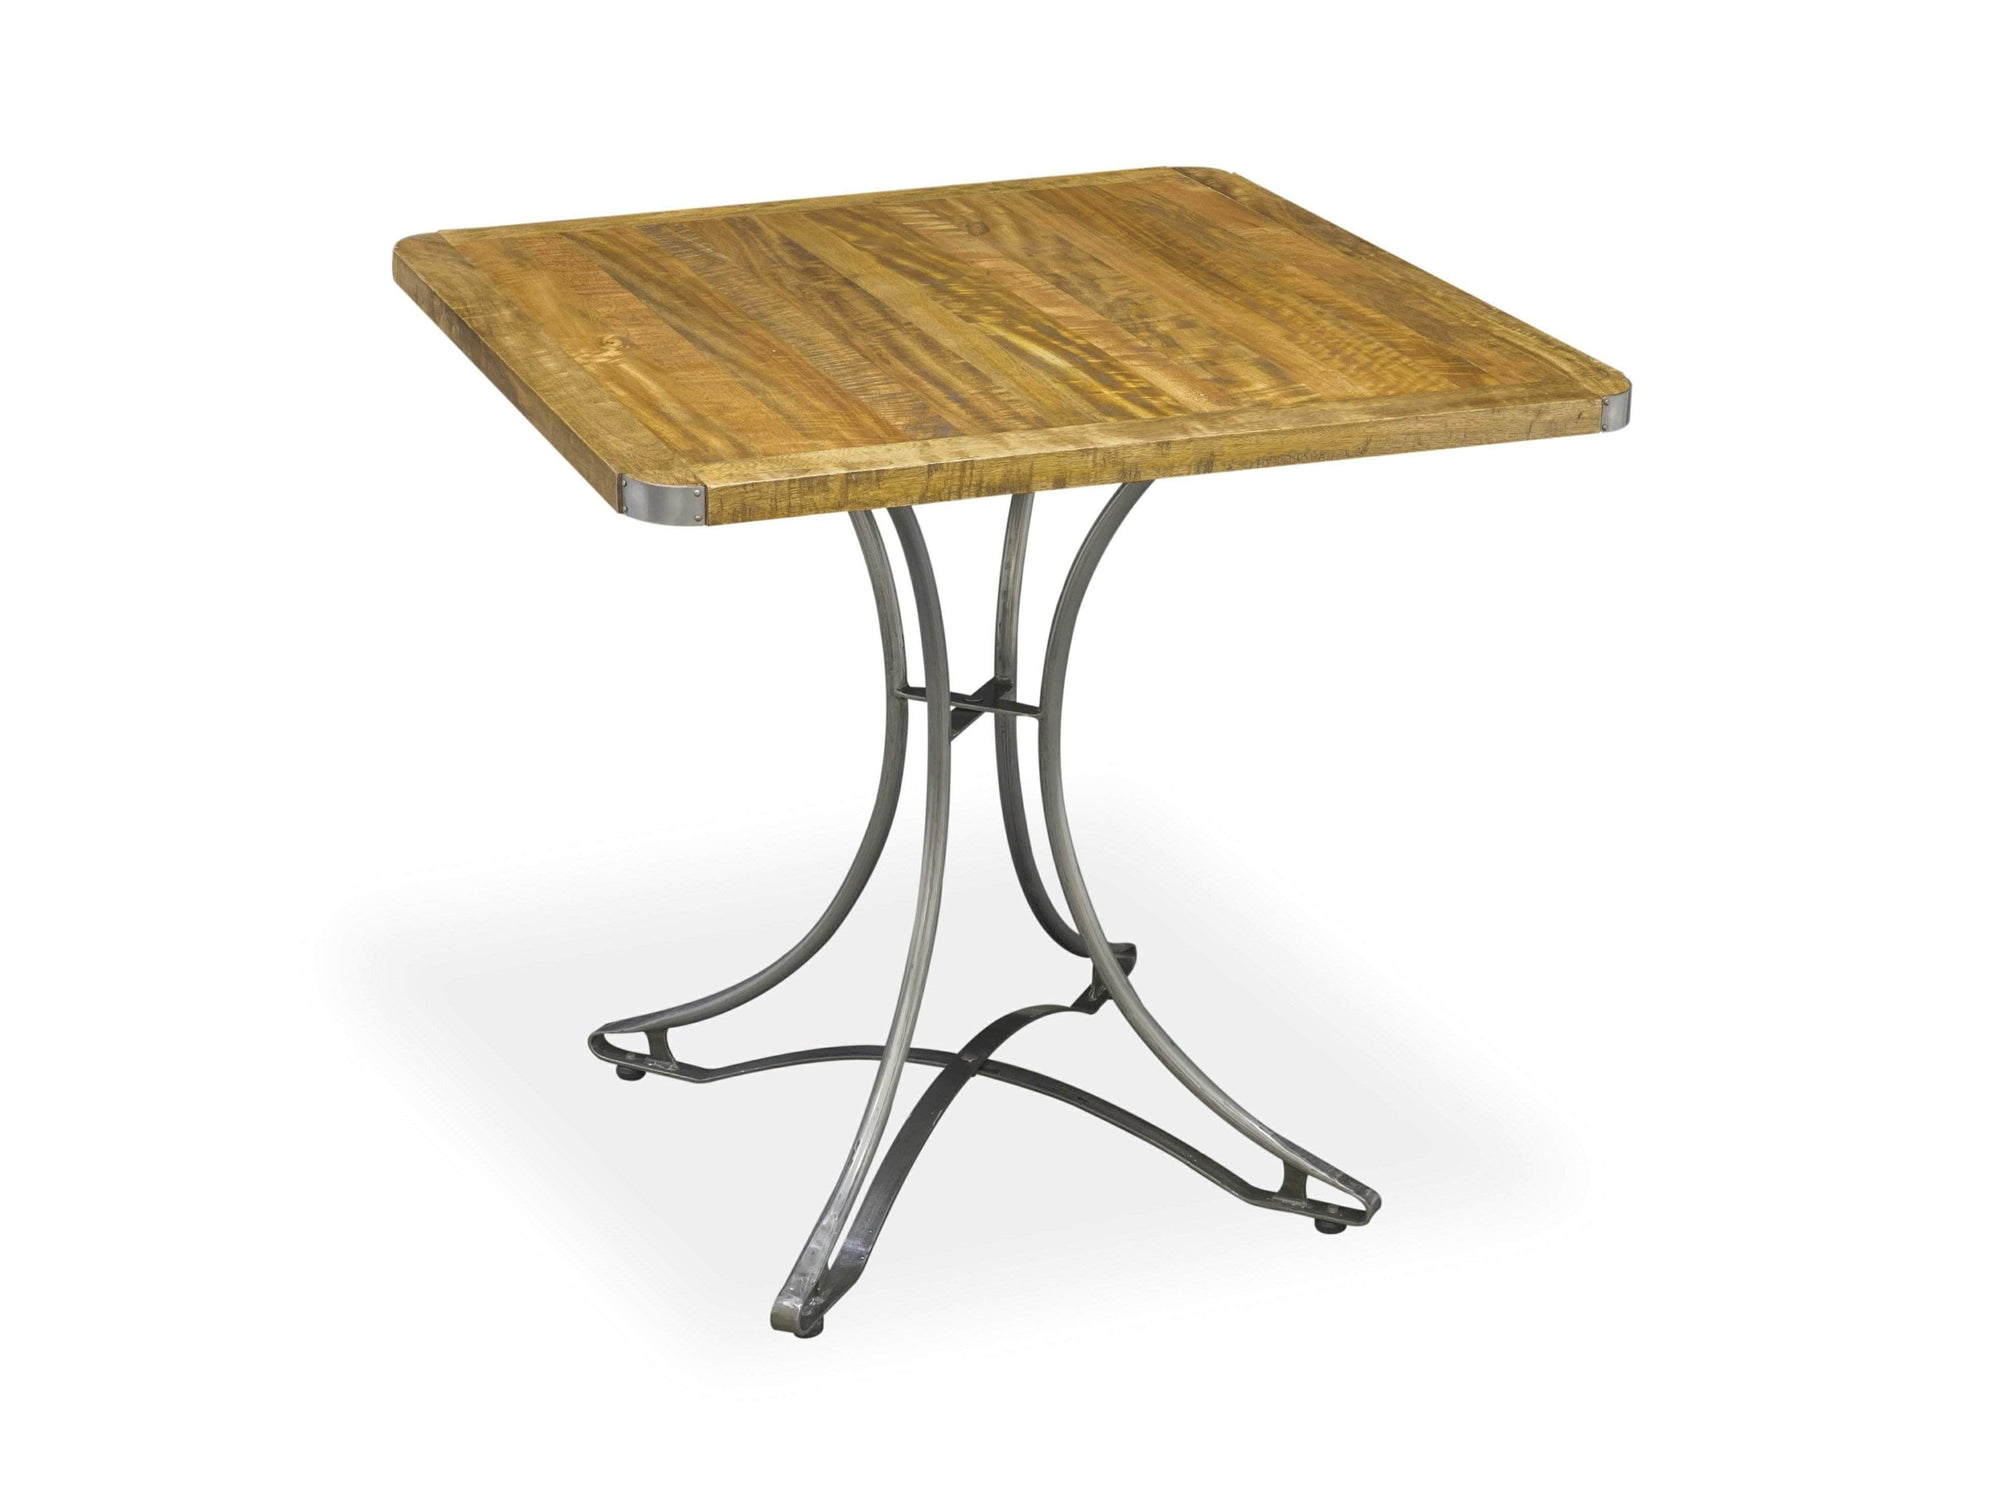 Small, square industrial dining table suitable for two to four diners